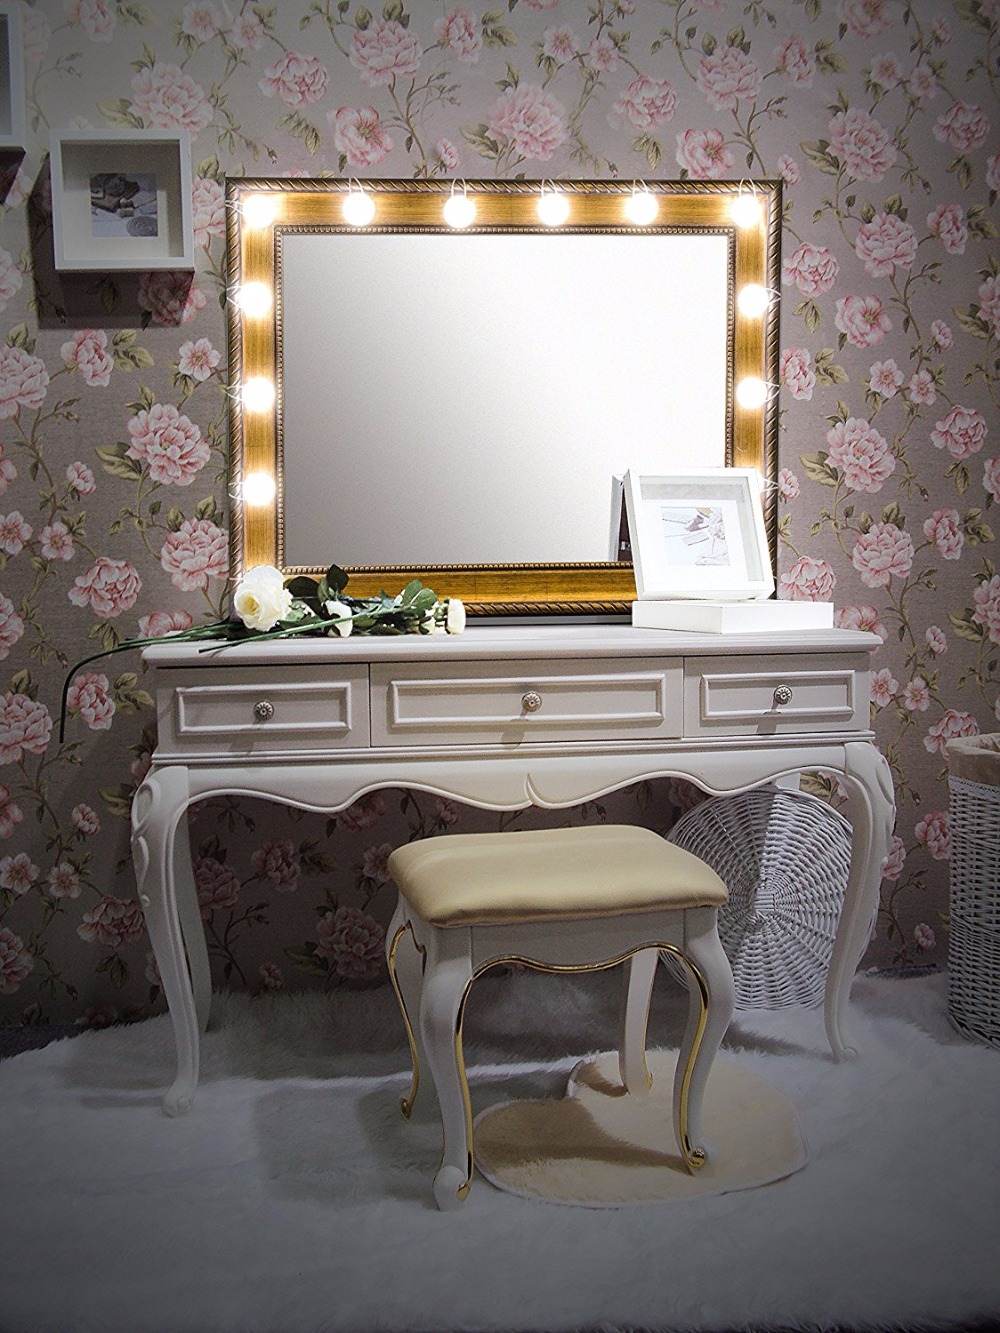 Aliexpress : Buy Hollywood DIY Vanity Lights Strip Kit For Lighted  Makeup Dressing Table Mirror Plug In 14 LED Lighting Fixture From Reliable  Kit Kits